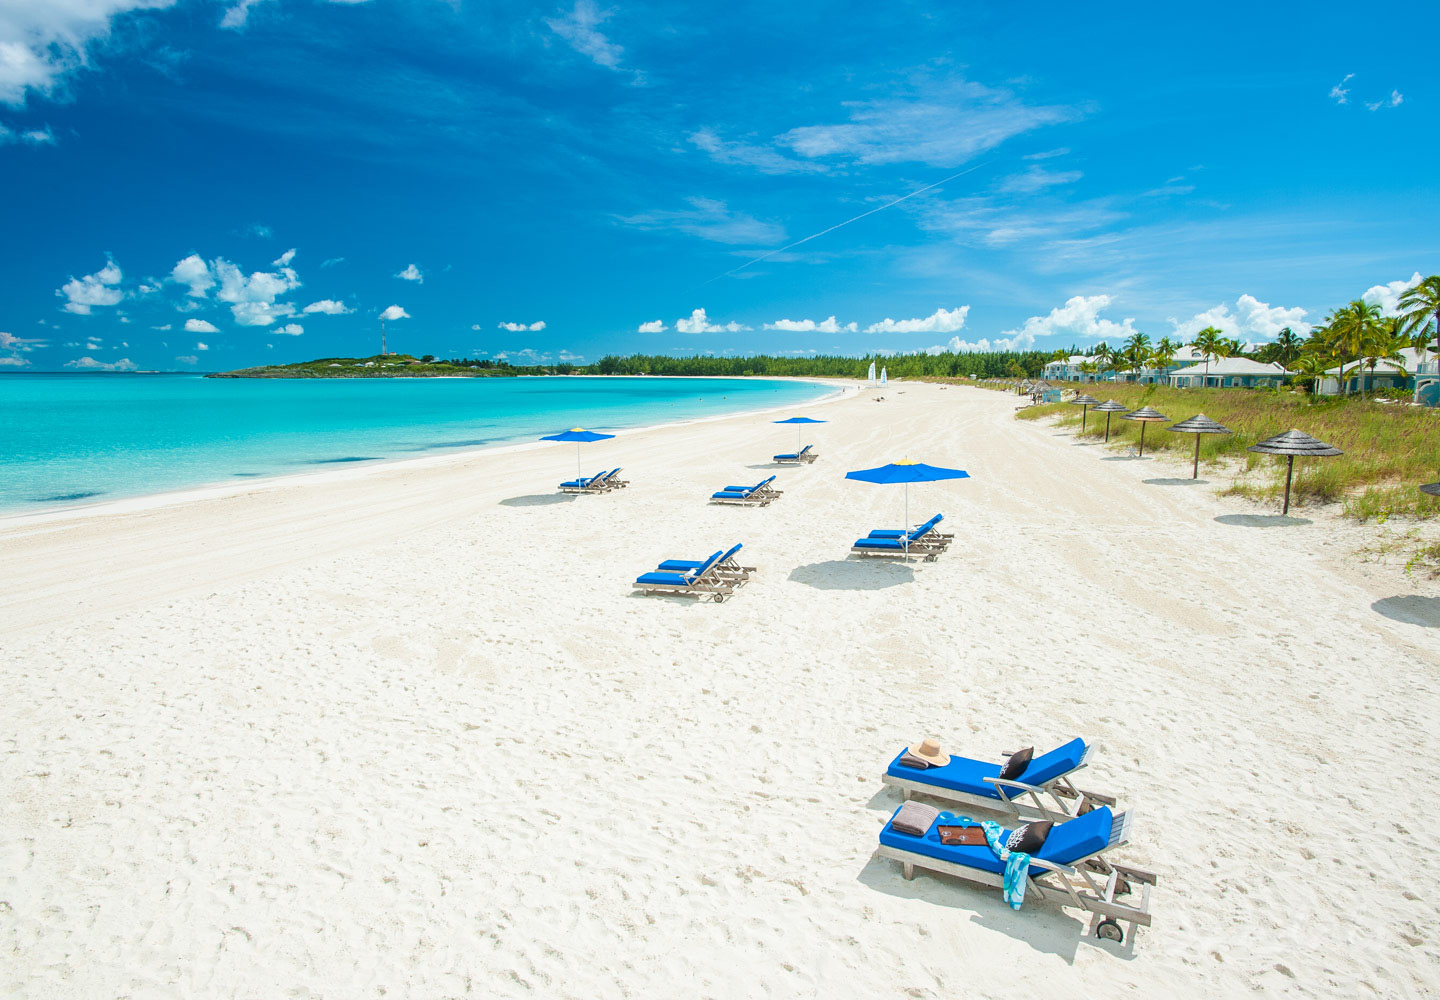 Travel Agency All-Inclusive Resort Sandals Emerald Bay 066